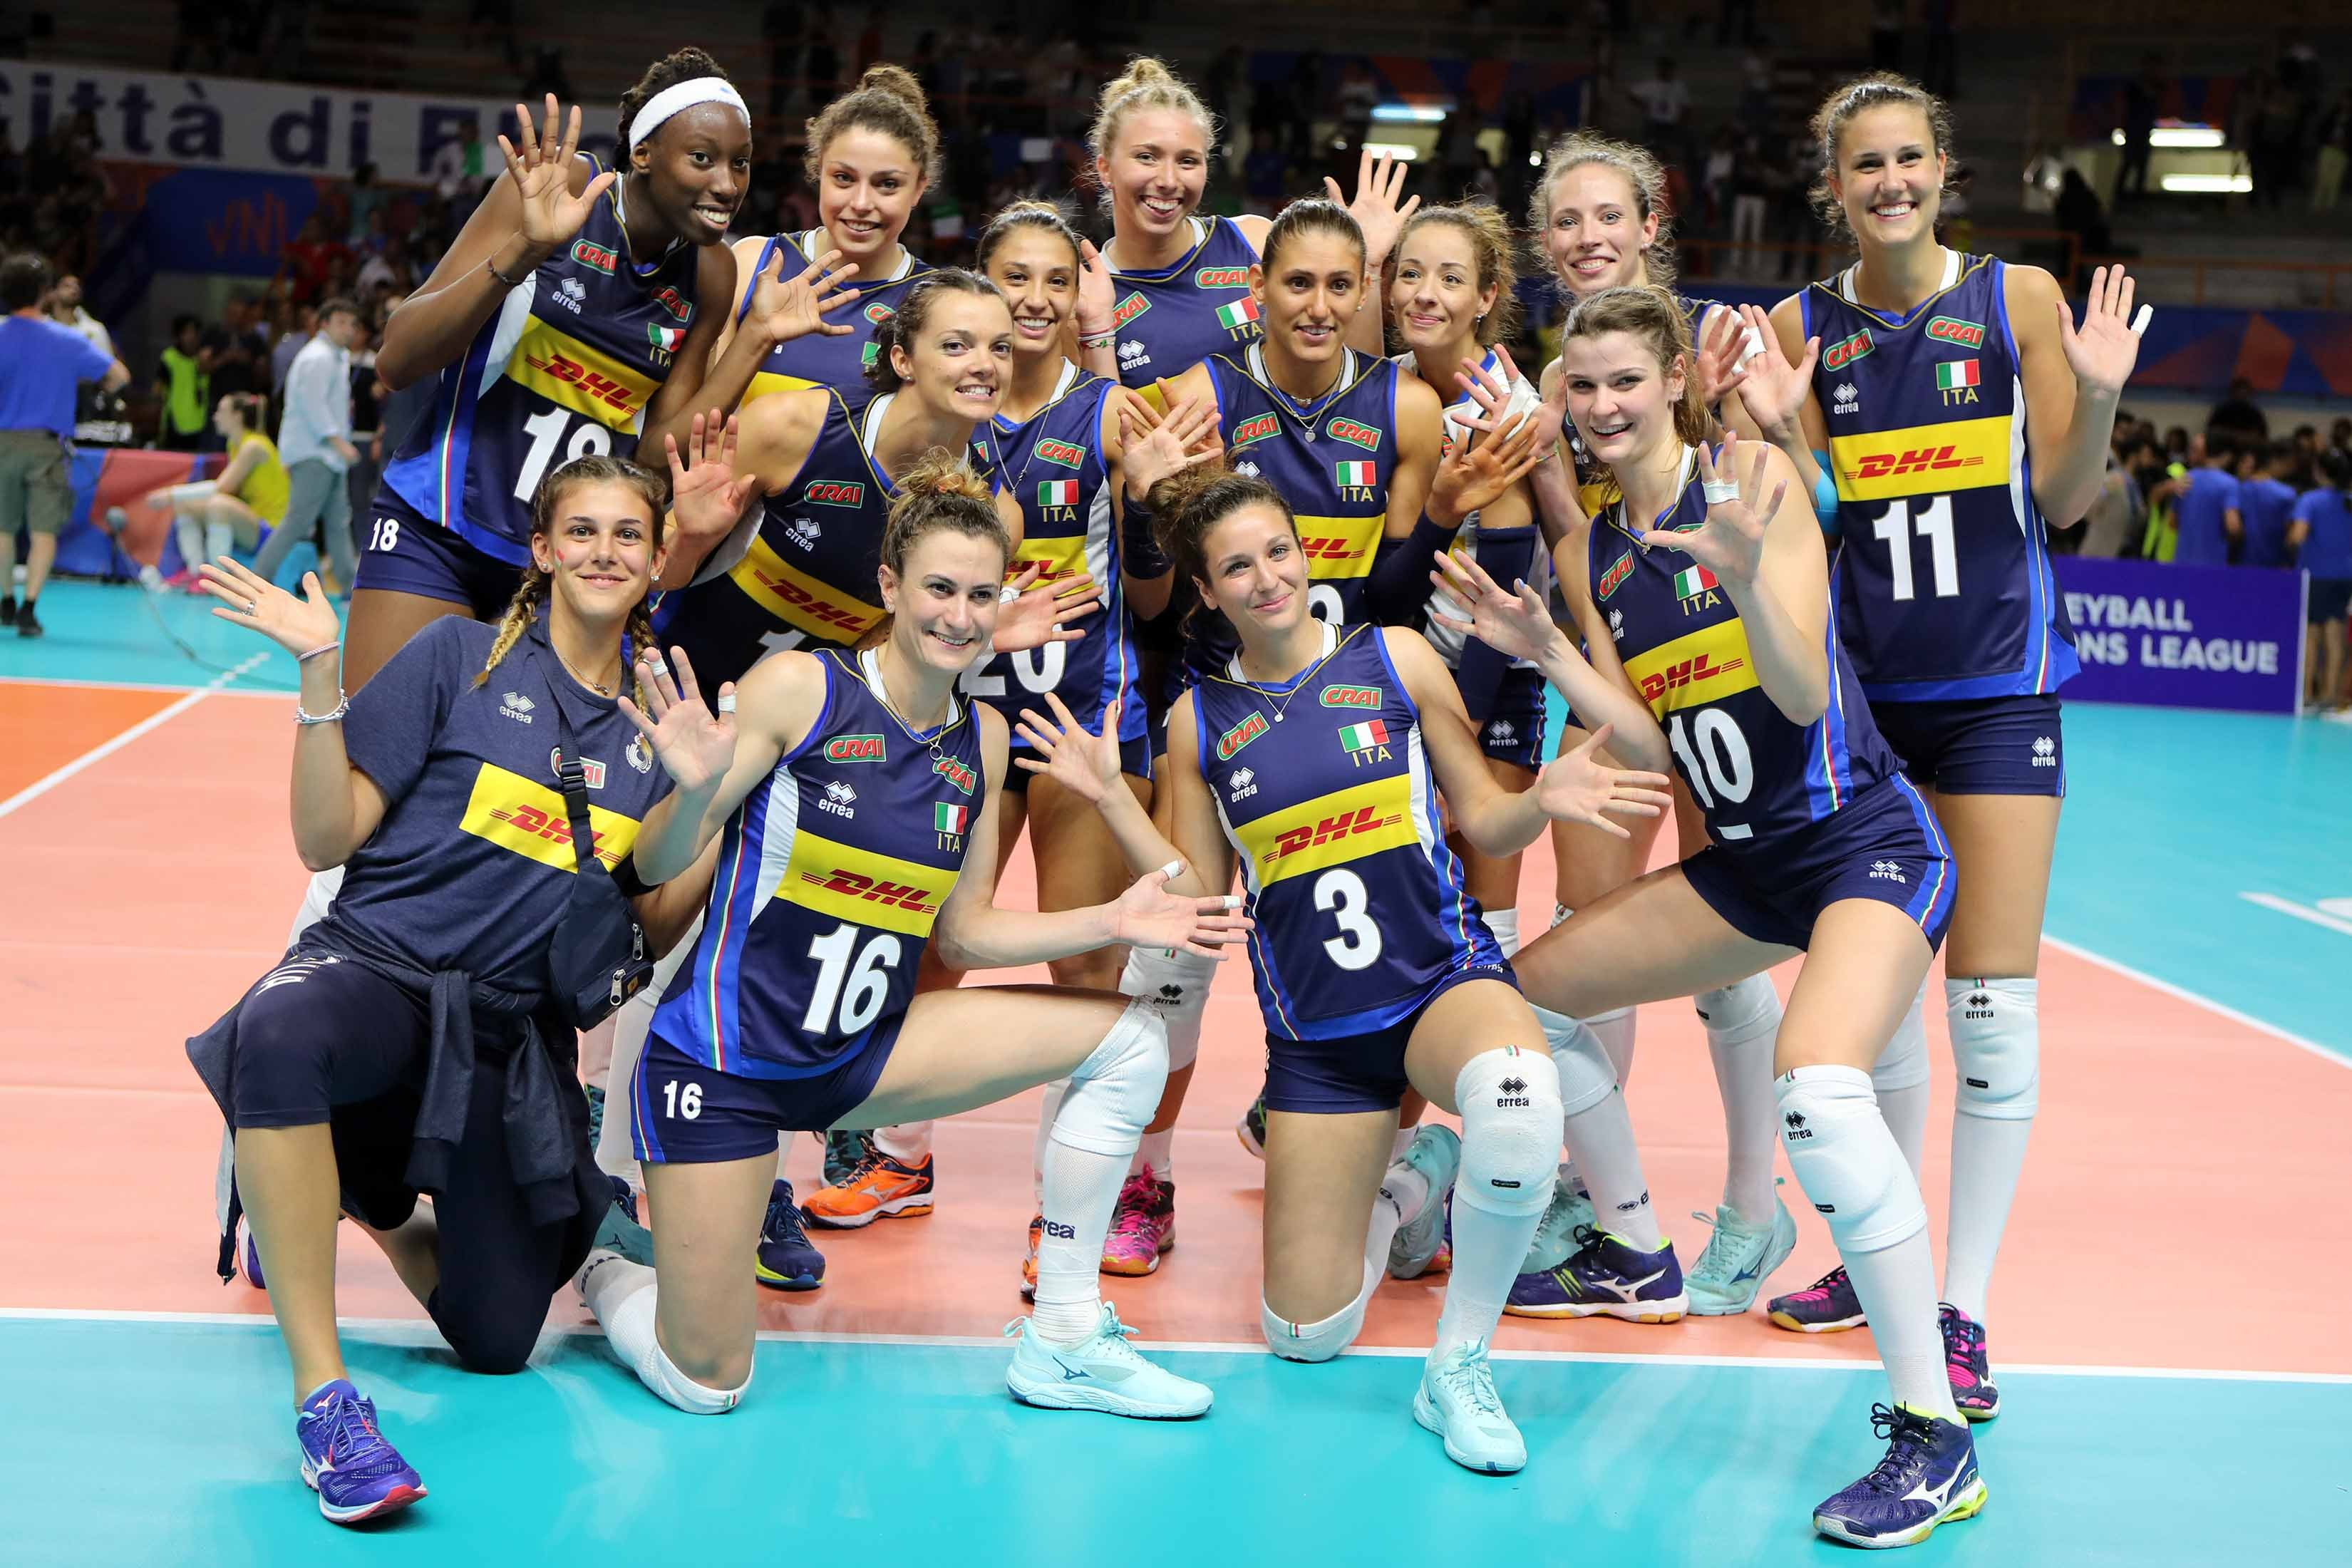 Volleyball Nations League femminile: al Palasele l'Italia batte il Brasile